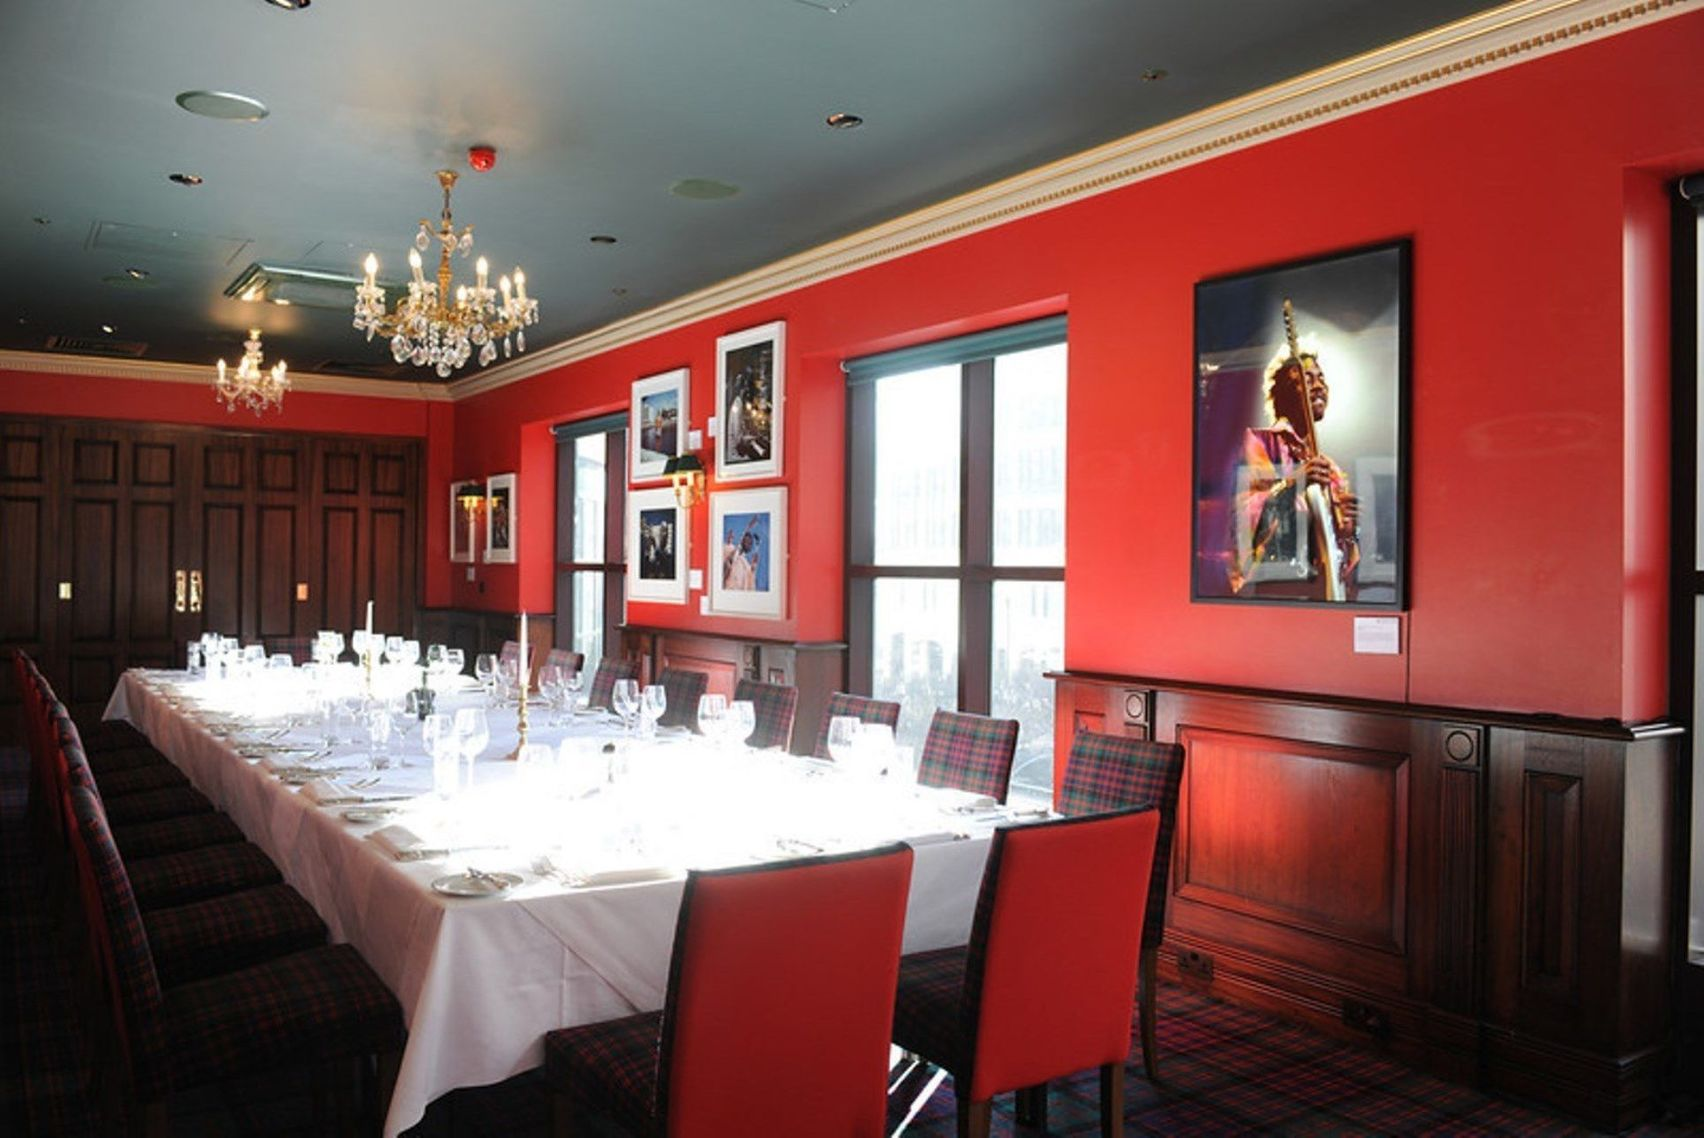 The Boisdale Fleming Gallery Room, Boisdale of Canary Wharf